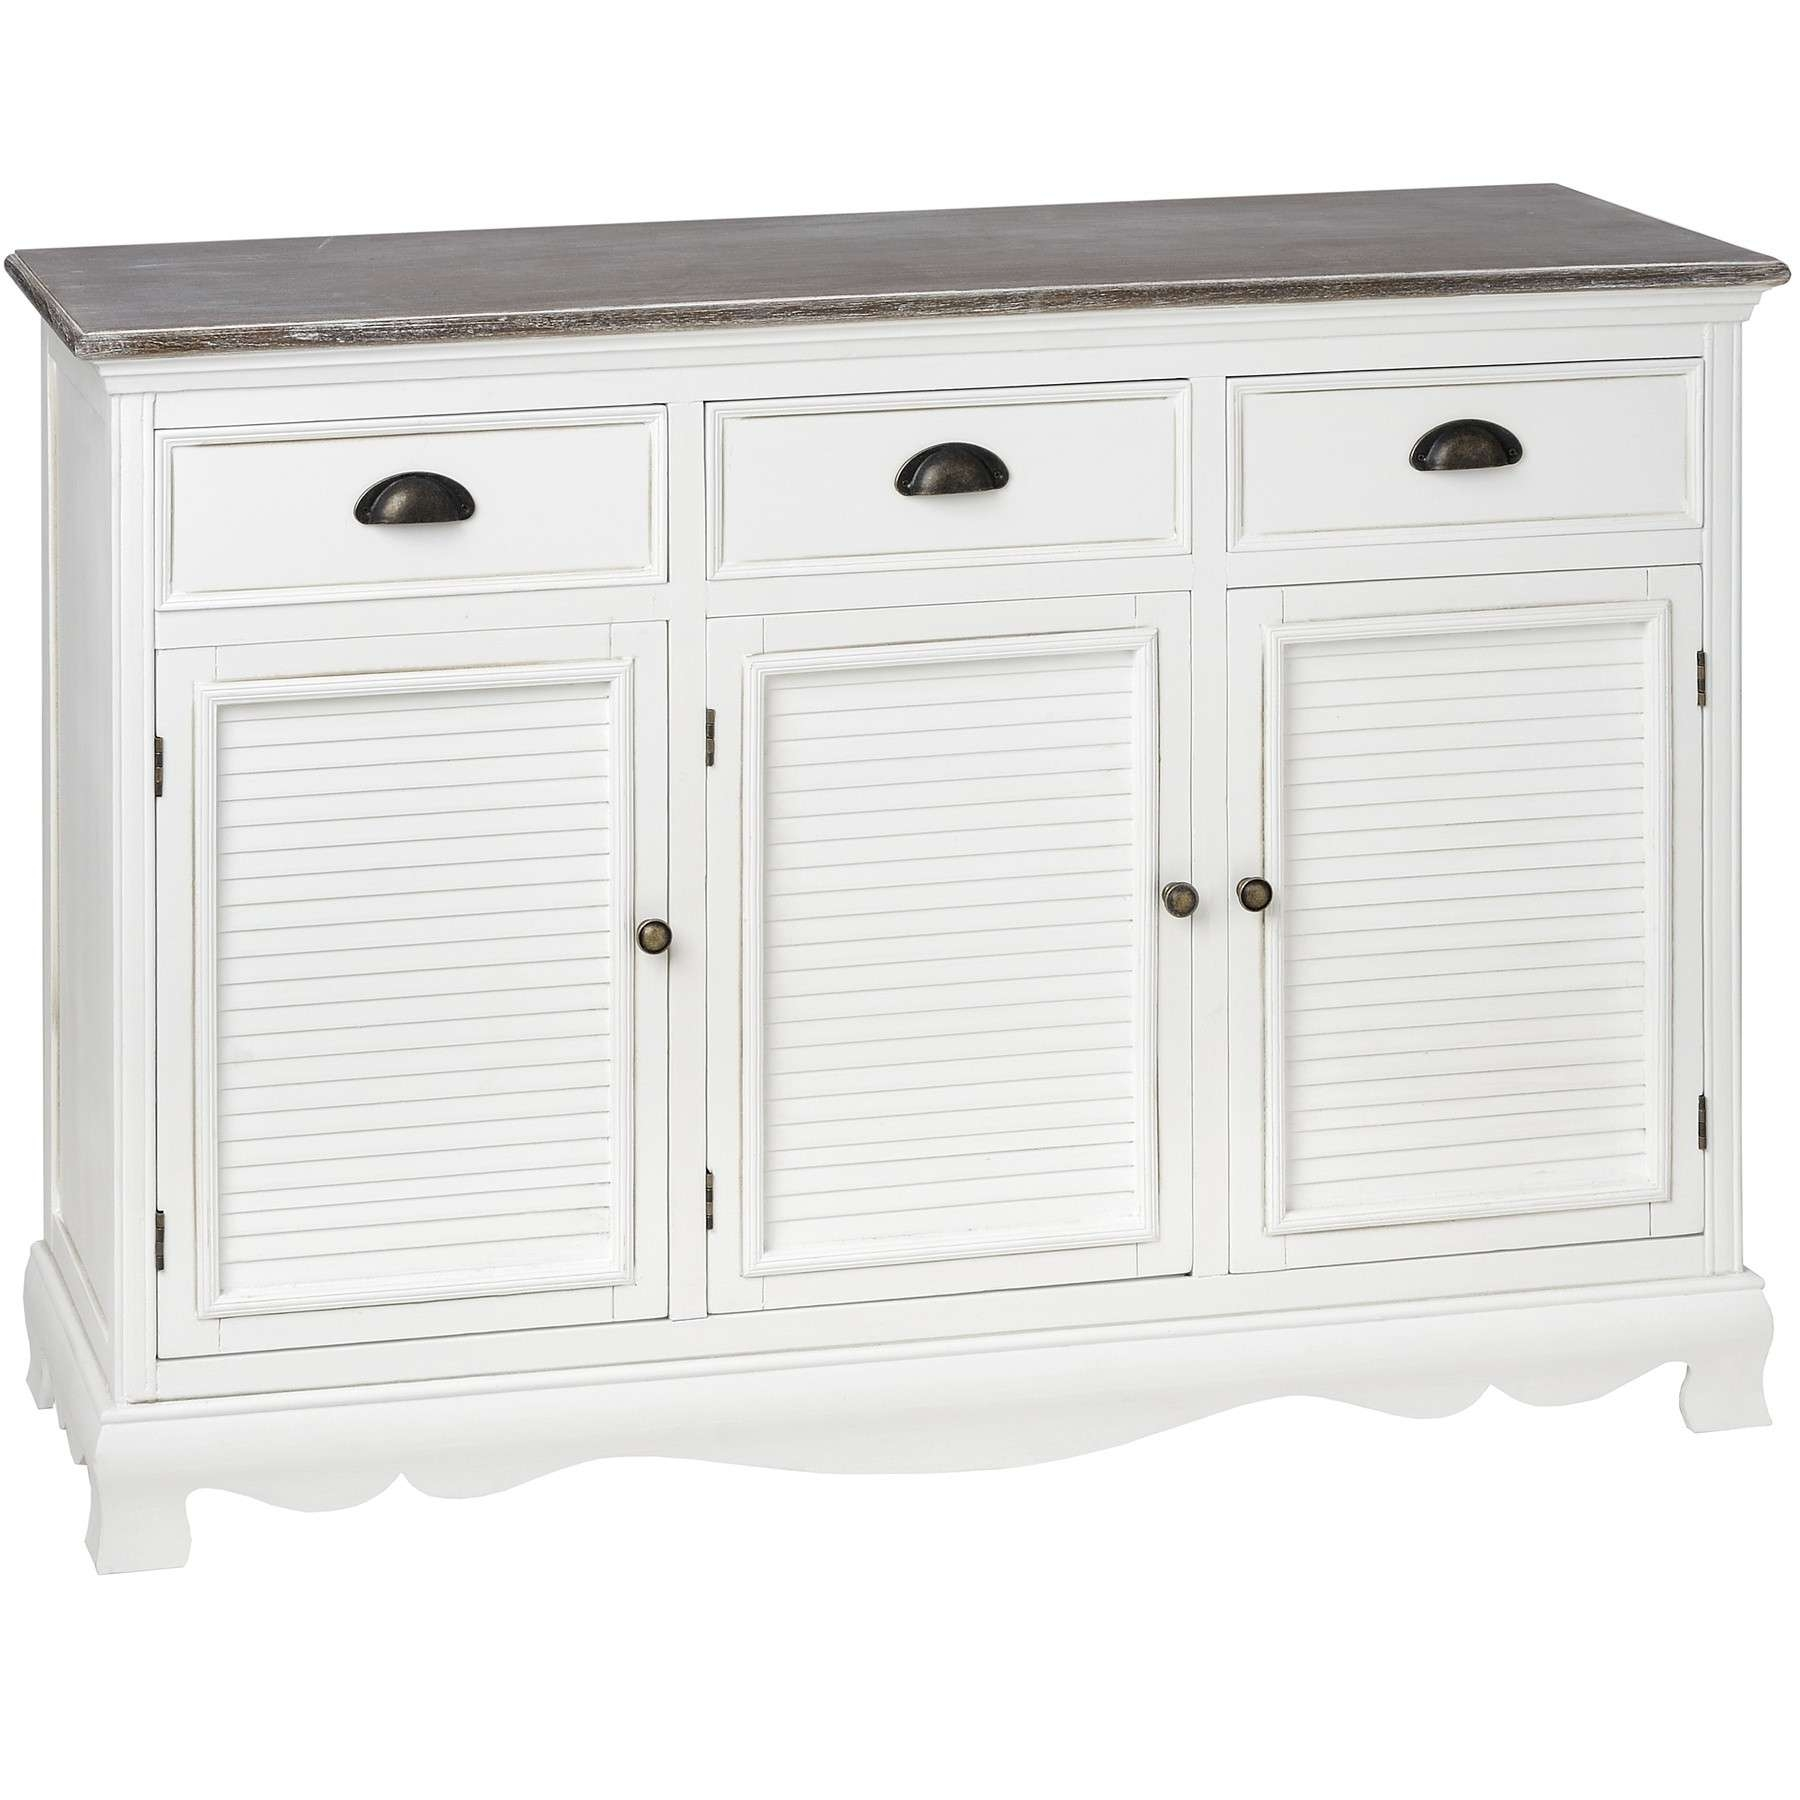 Louisiana Large White Sideboard With 3 Doors| Bedroom Furniture Direct For Large White Sideboards (View 12 of 20)